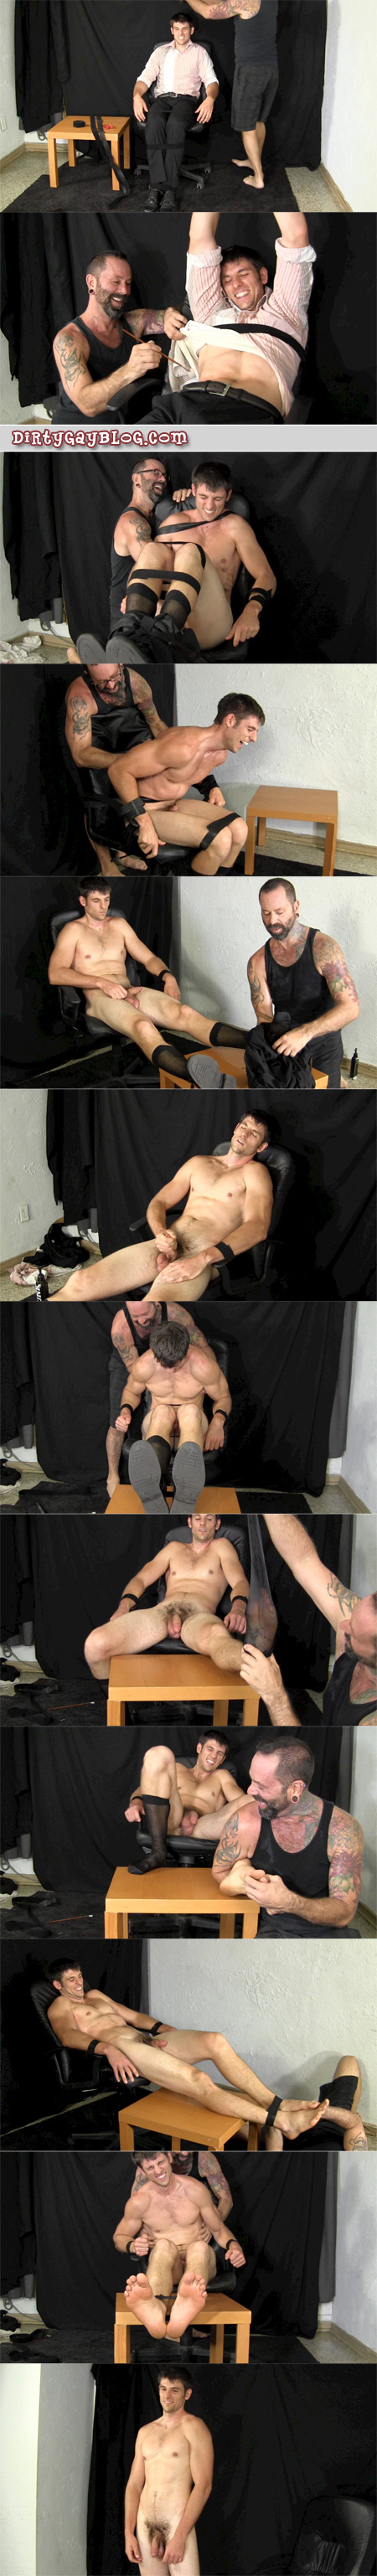 Straight man tied up by another man, then stripped to his sheer socks and tickled all over naked and being turned on by it.